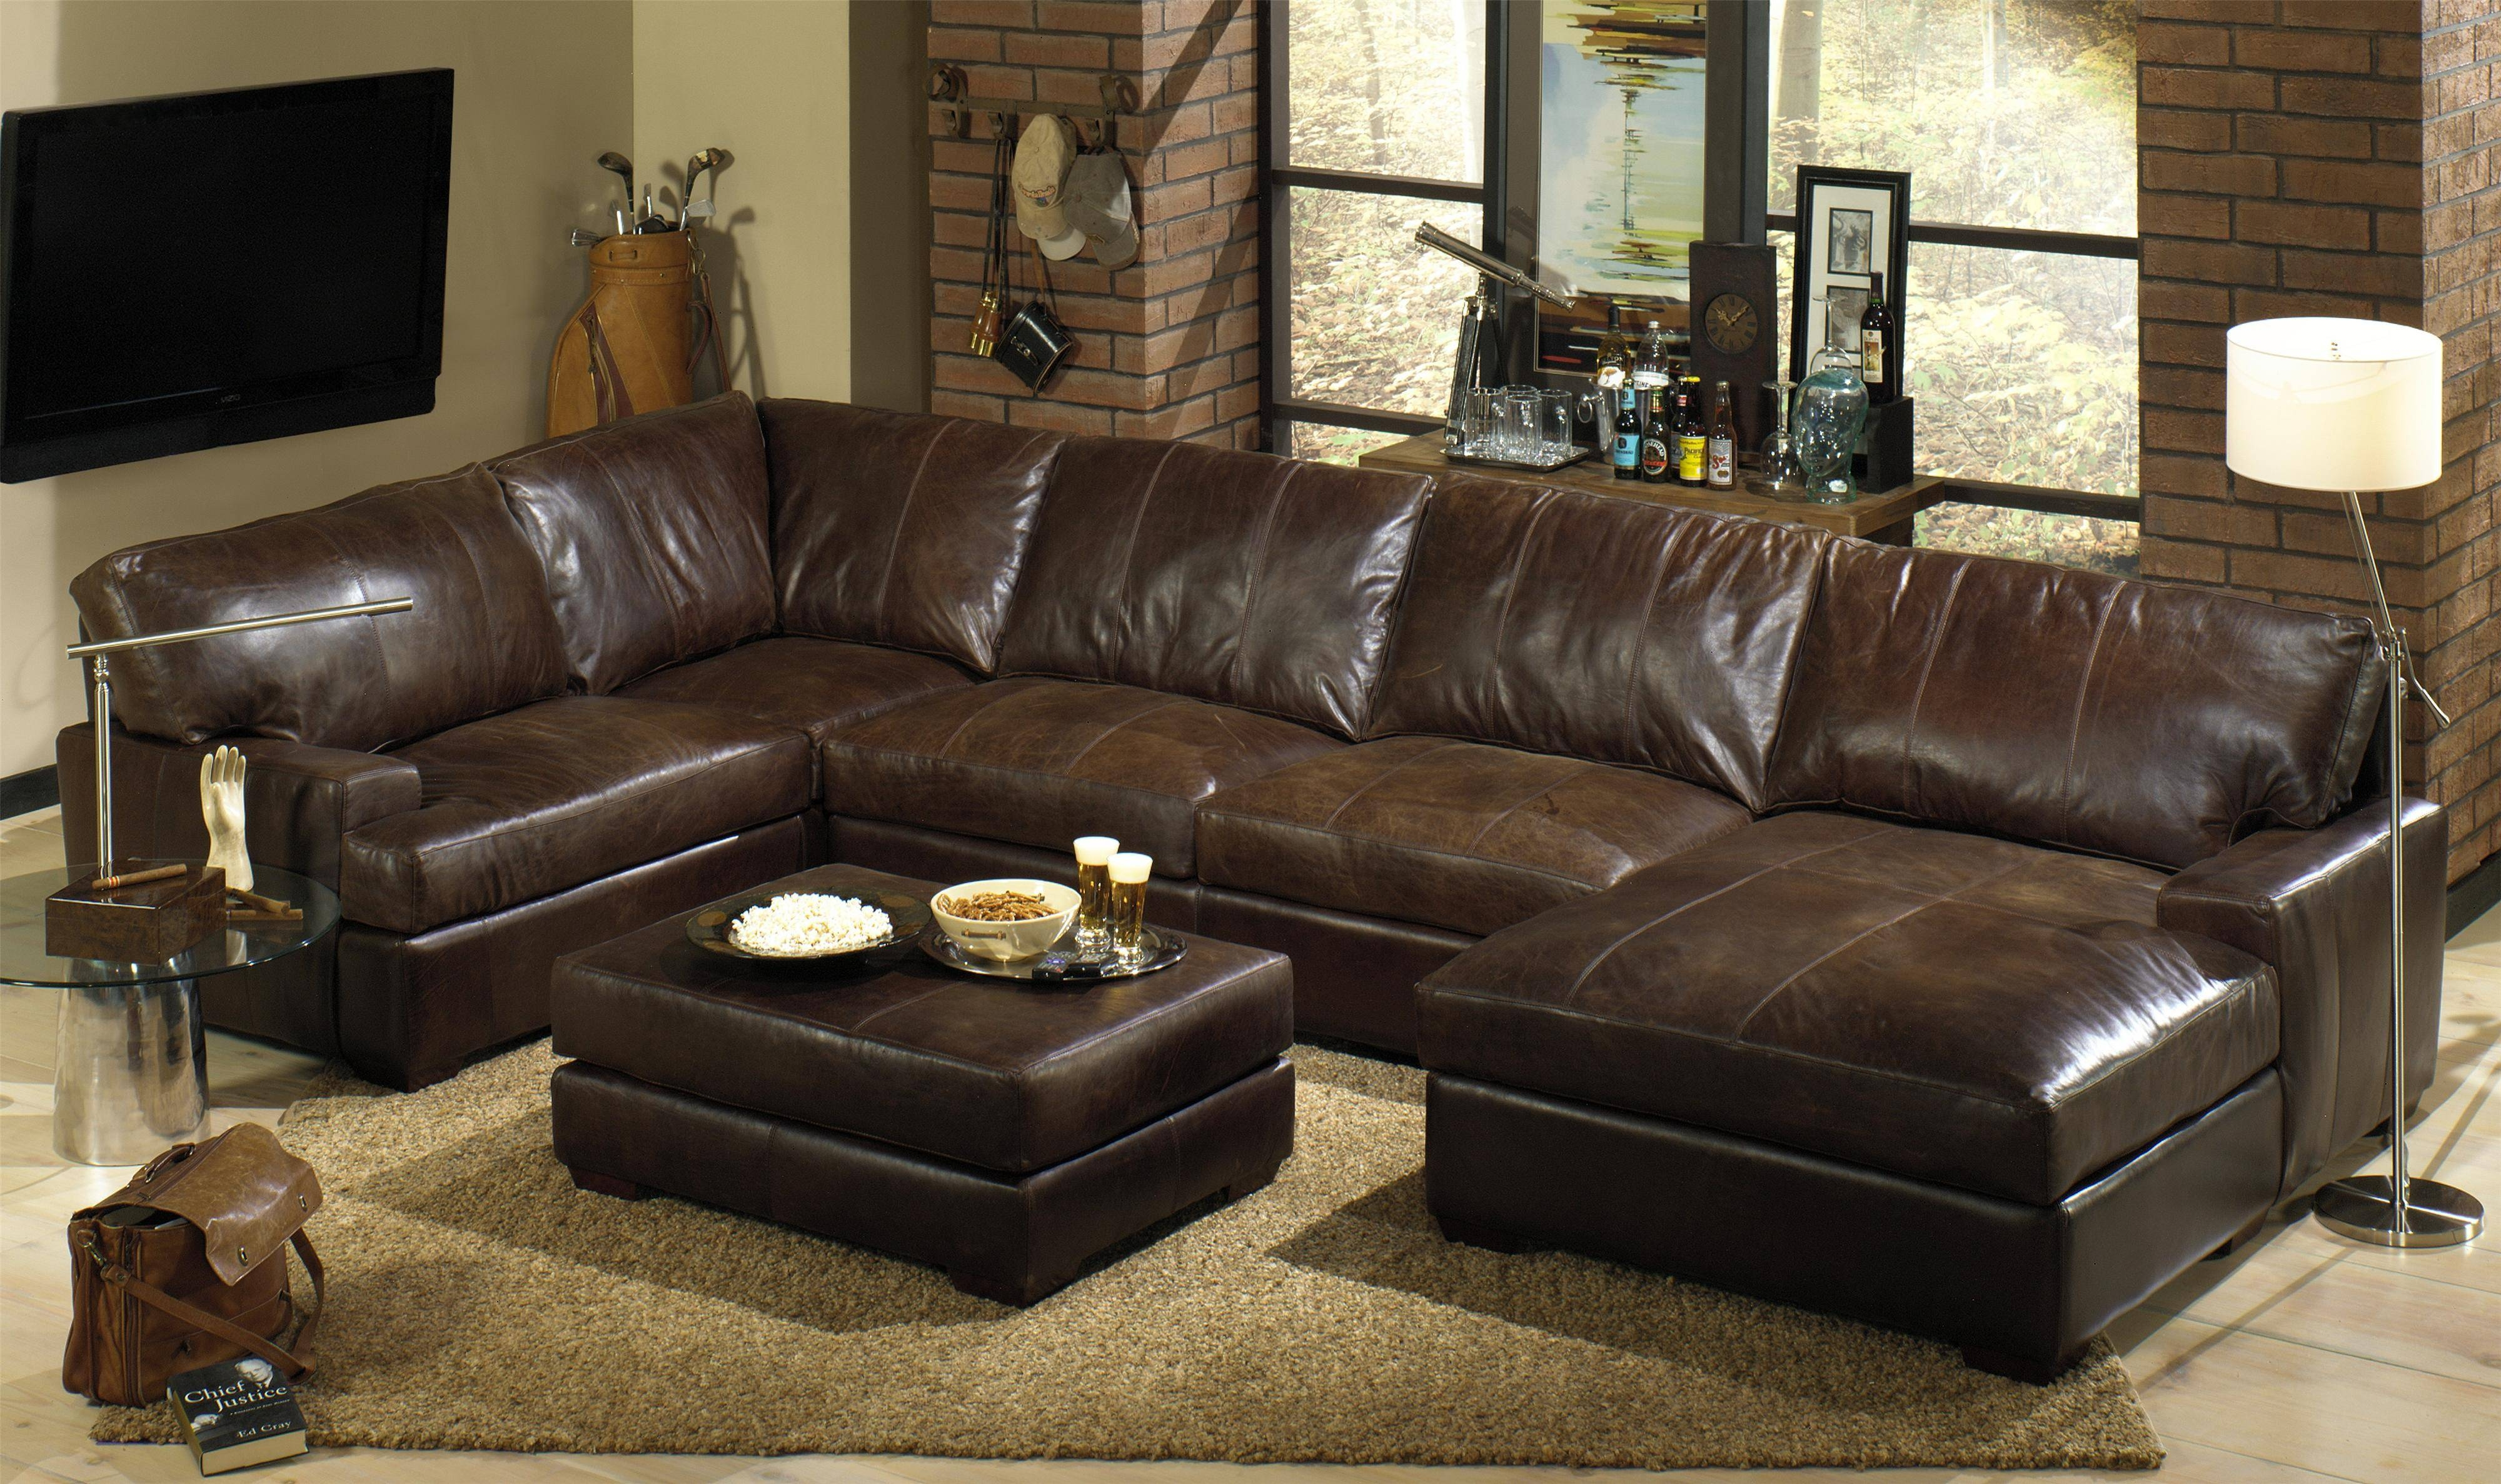 Sectional Sofa Furniture inside Traditional Sectional Sofas (Image 11 of 25)